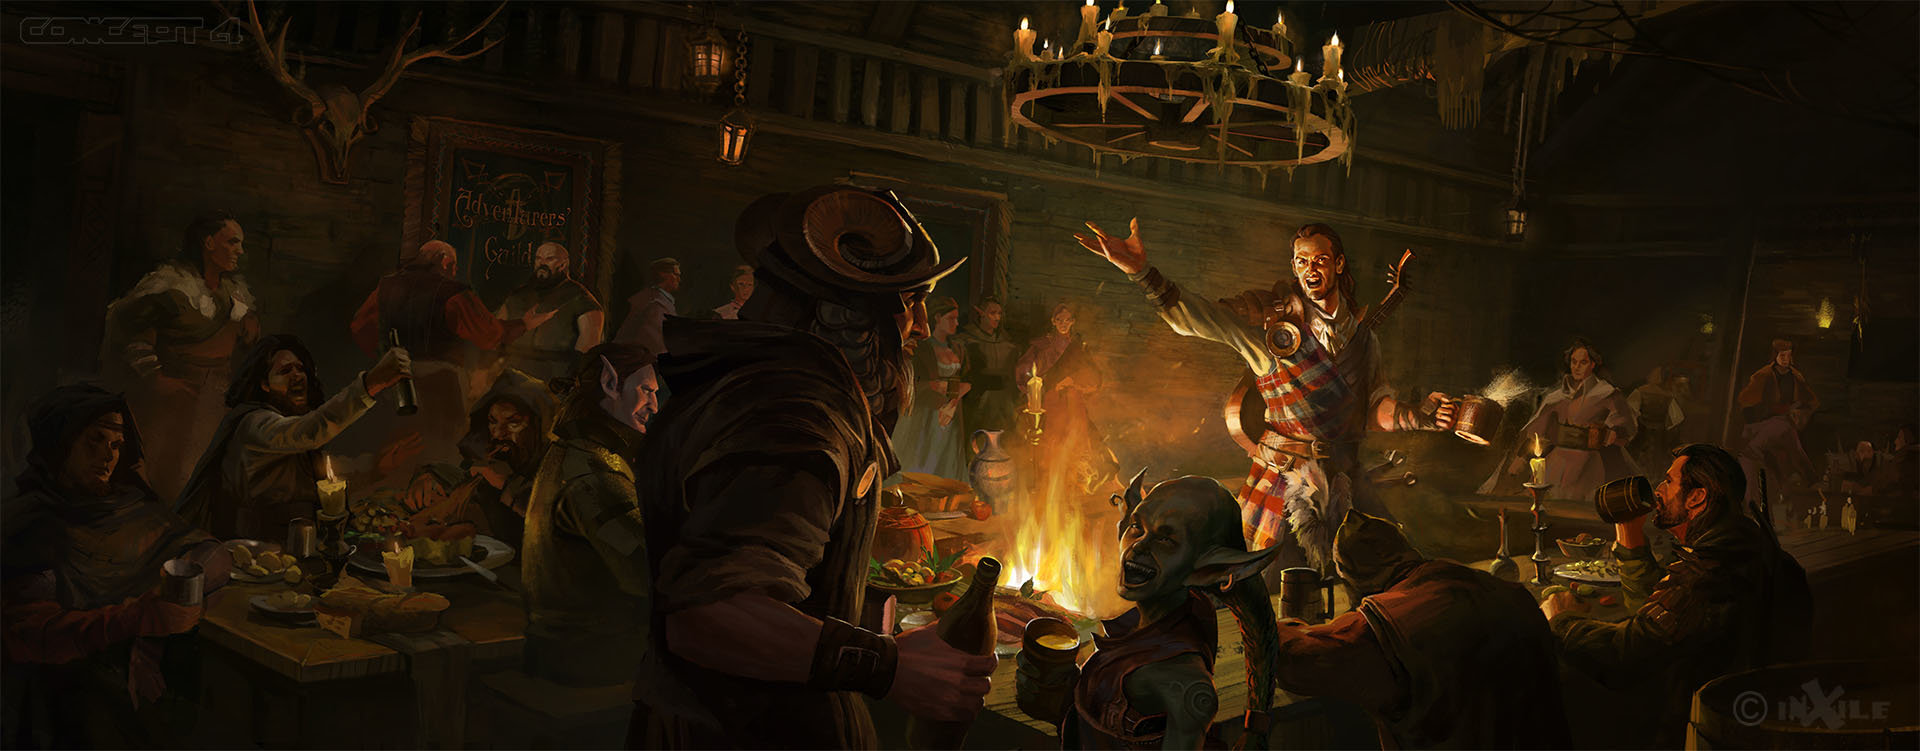 http://forum.life-for-fun.com/uploads/monthly_2016_12/concept-4-tavern.jpg.63be1bfd0e4edd780148bc5f389aab53.jpg